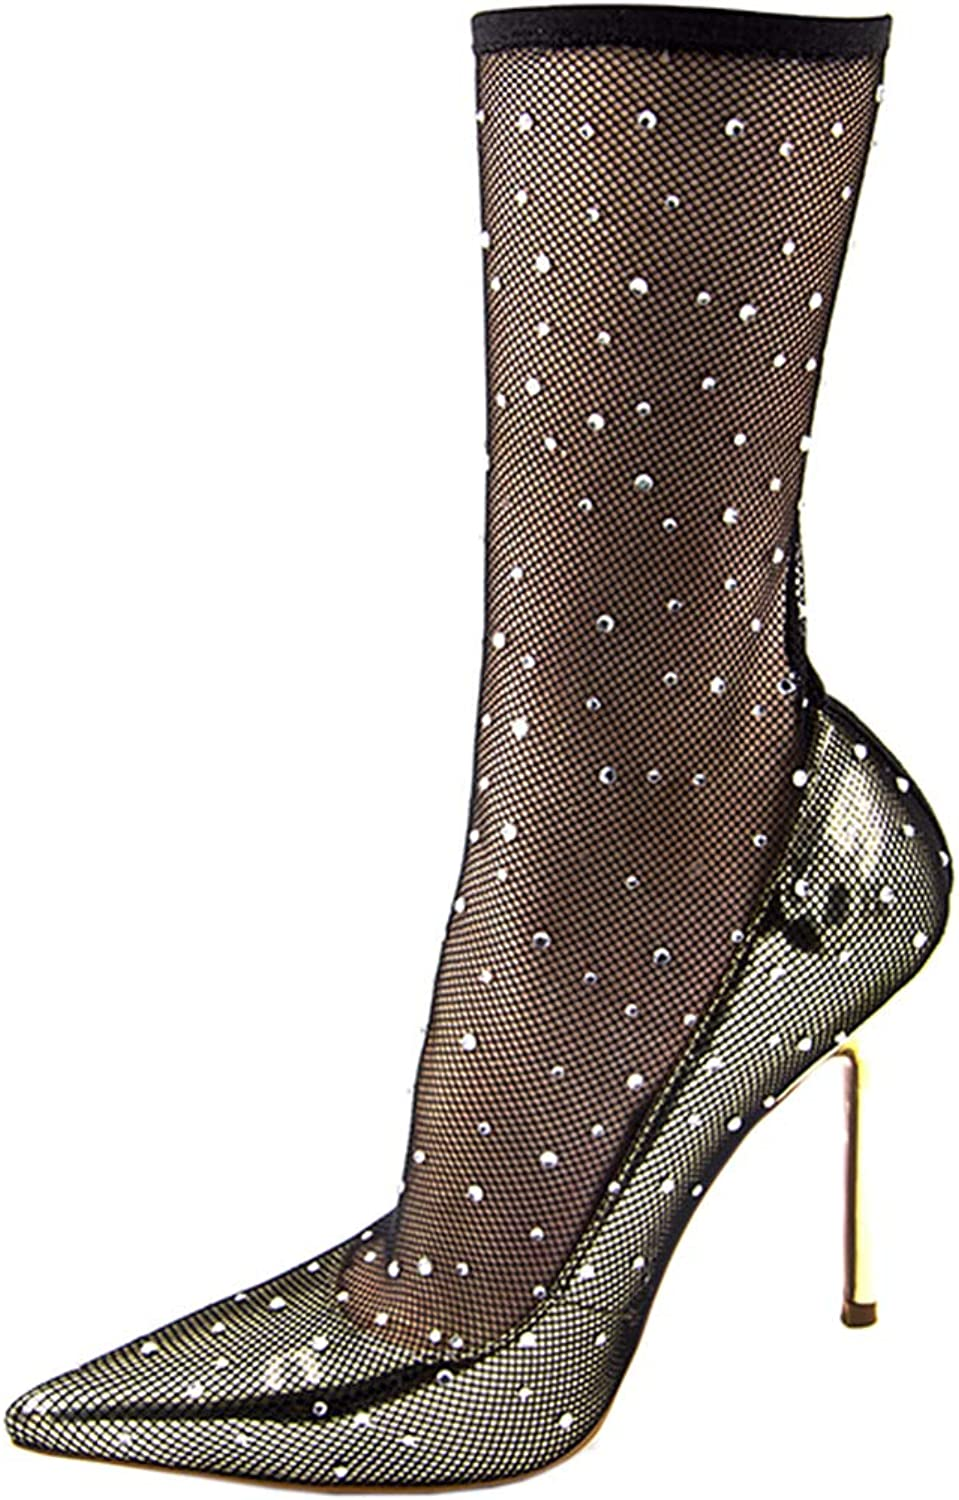 Vitalo Womens Fish Net Pointed Toe Stiletto Pumps Court shoes High Heel Ankle Boots